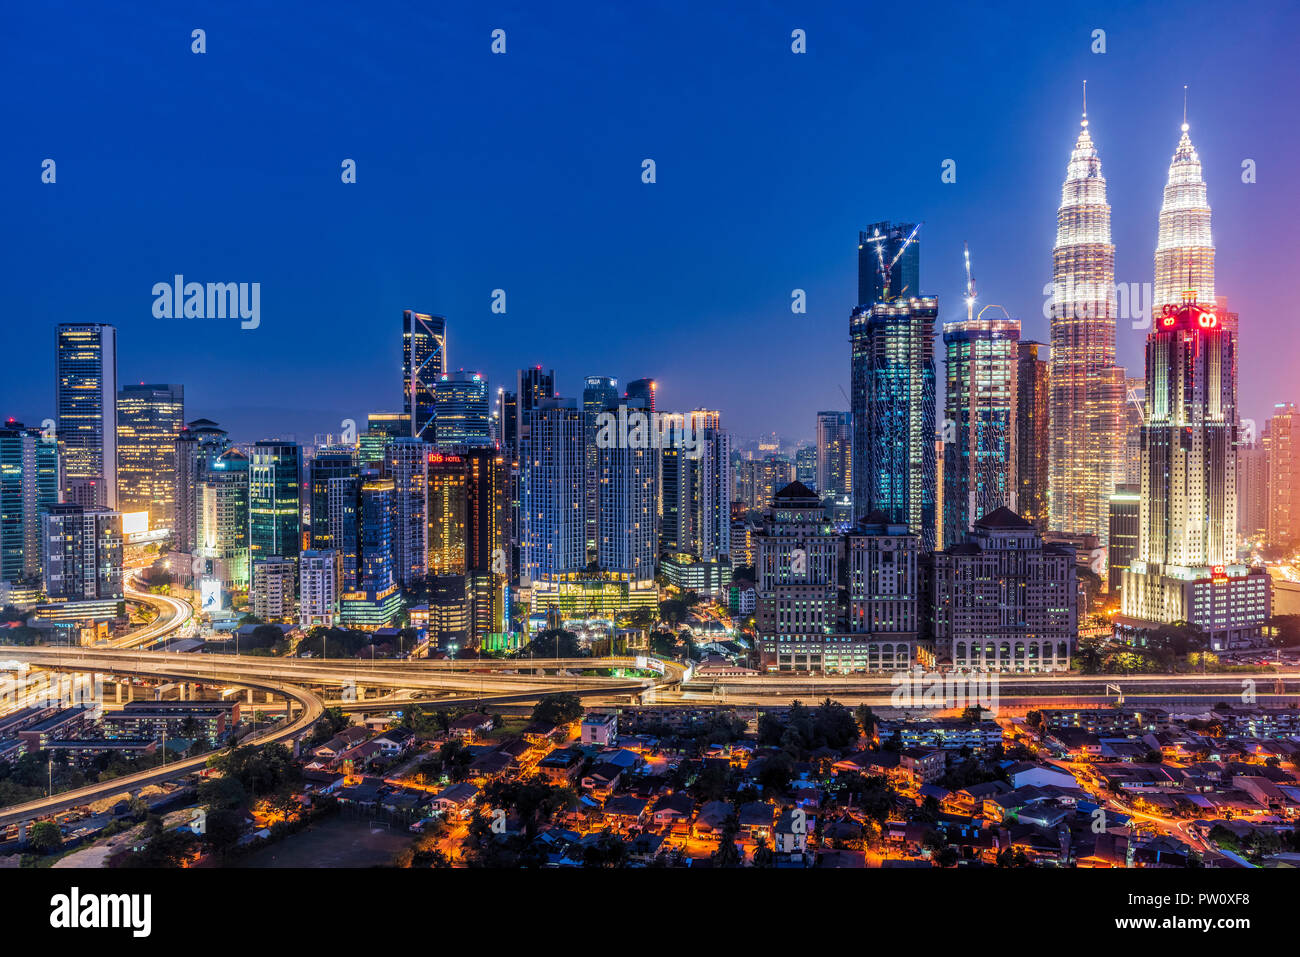 City skyline at night, Kuala Lumpur, Malaisie Photo Stock